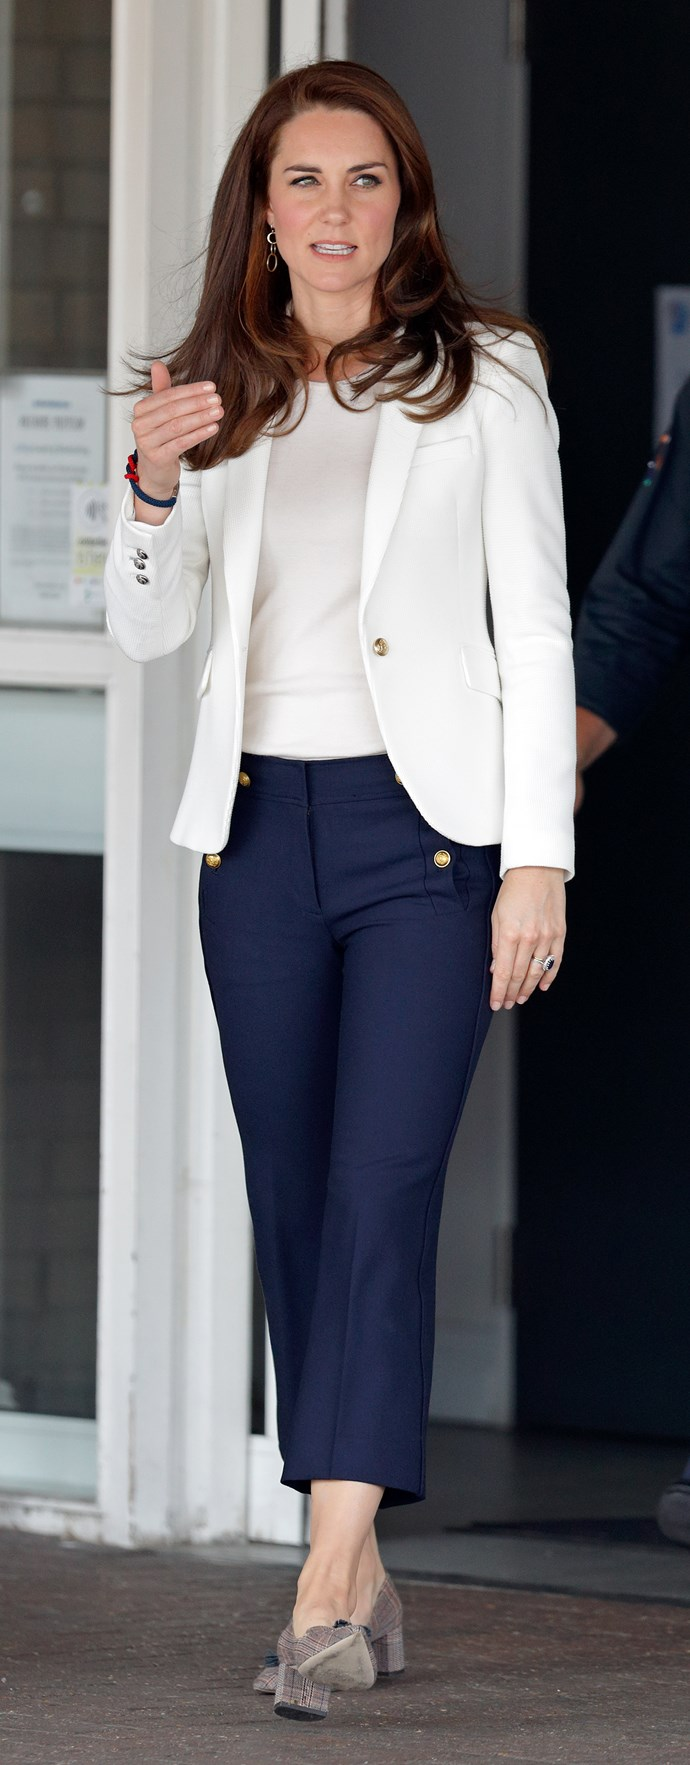 On 17 June 2017, Kate wore this Zara blazer paired with fitted J. Crew trousers and J. Crew tweed pumps for a chic nautical look.